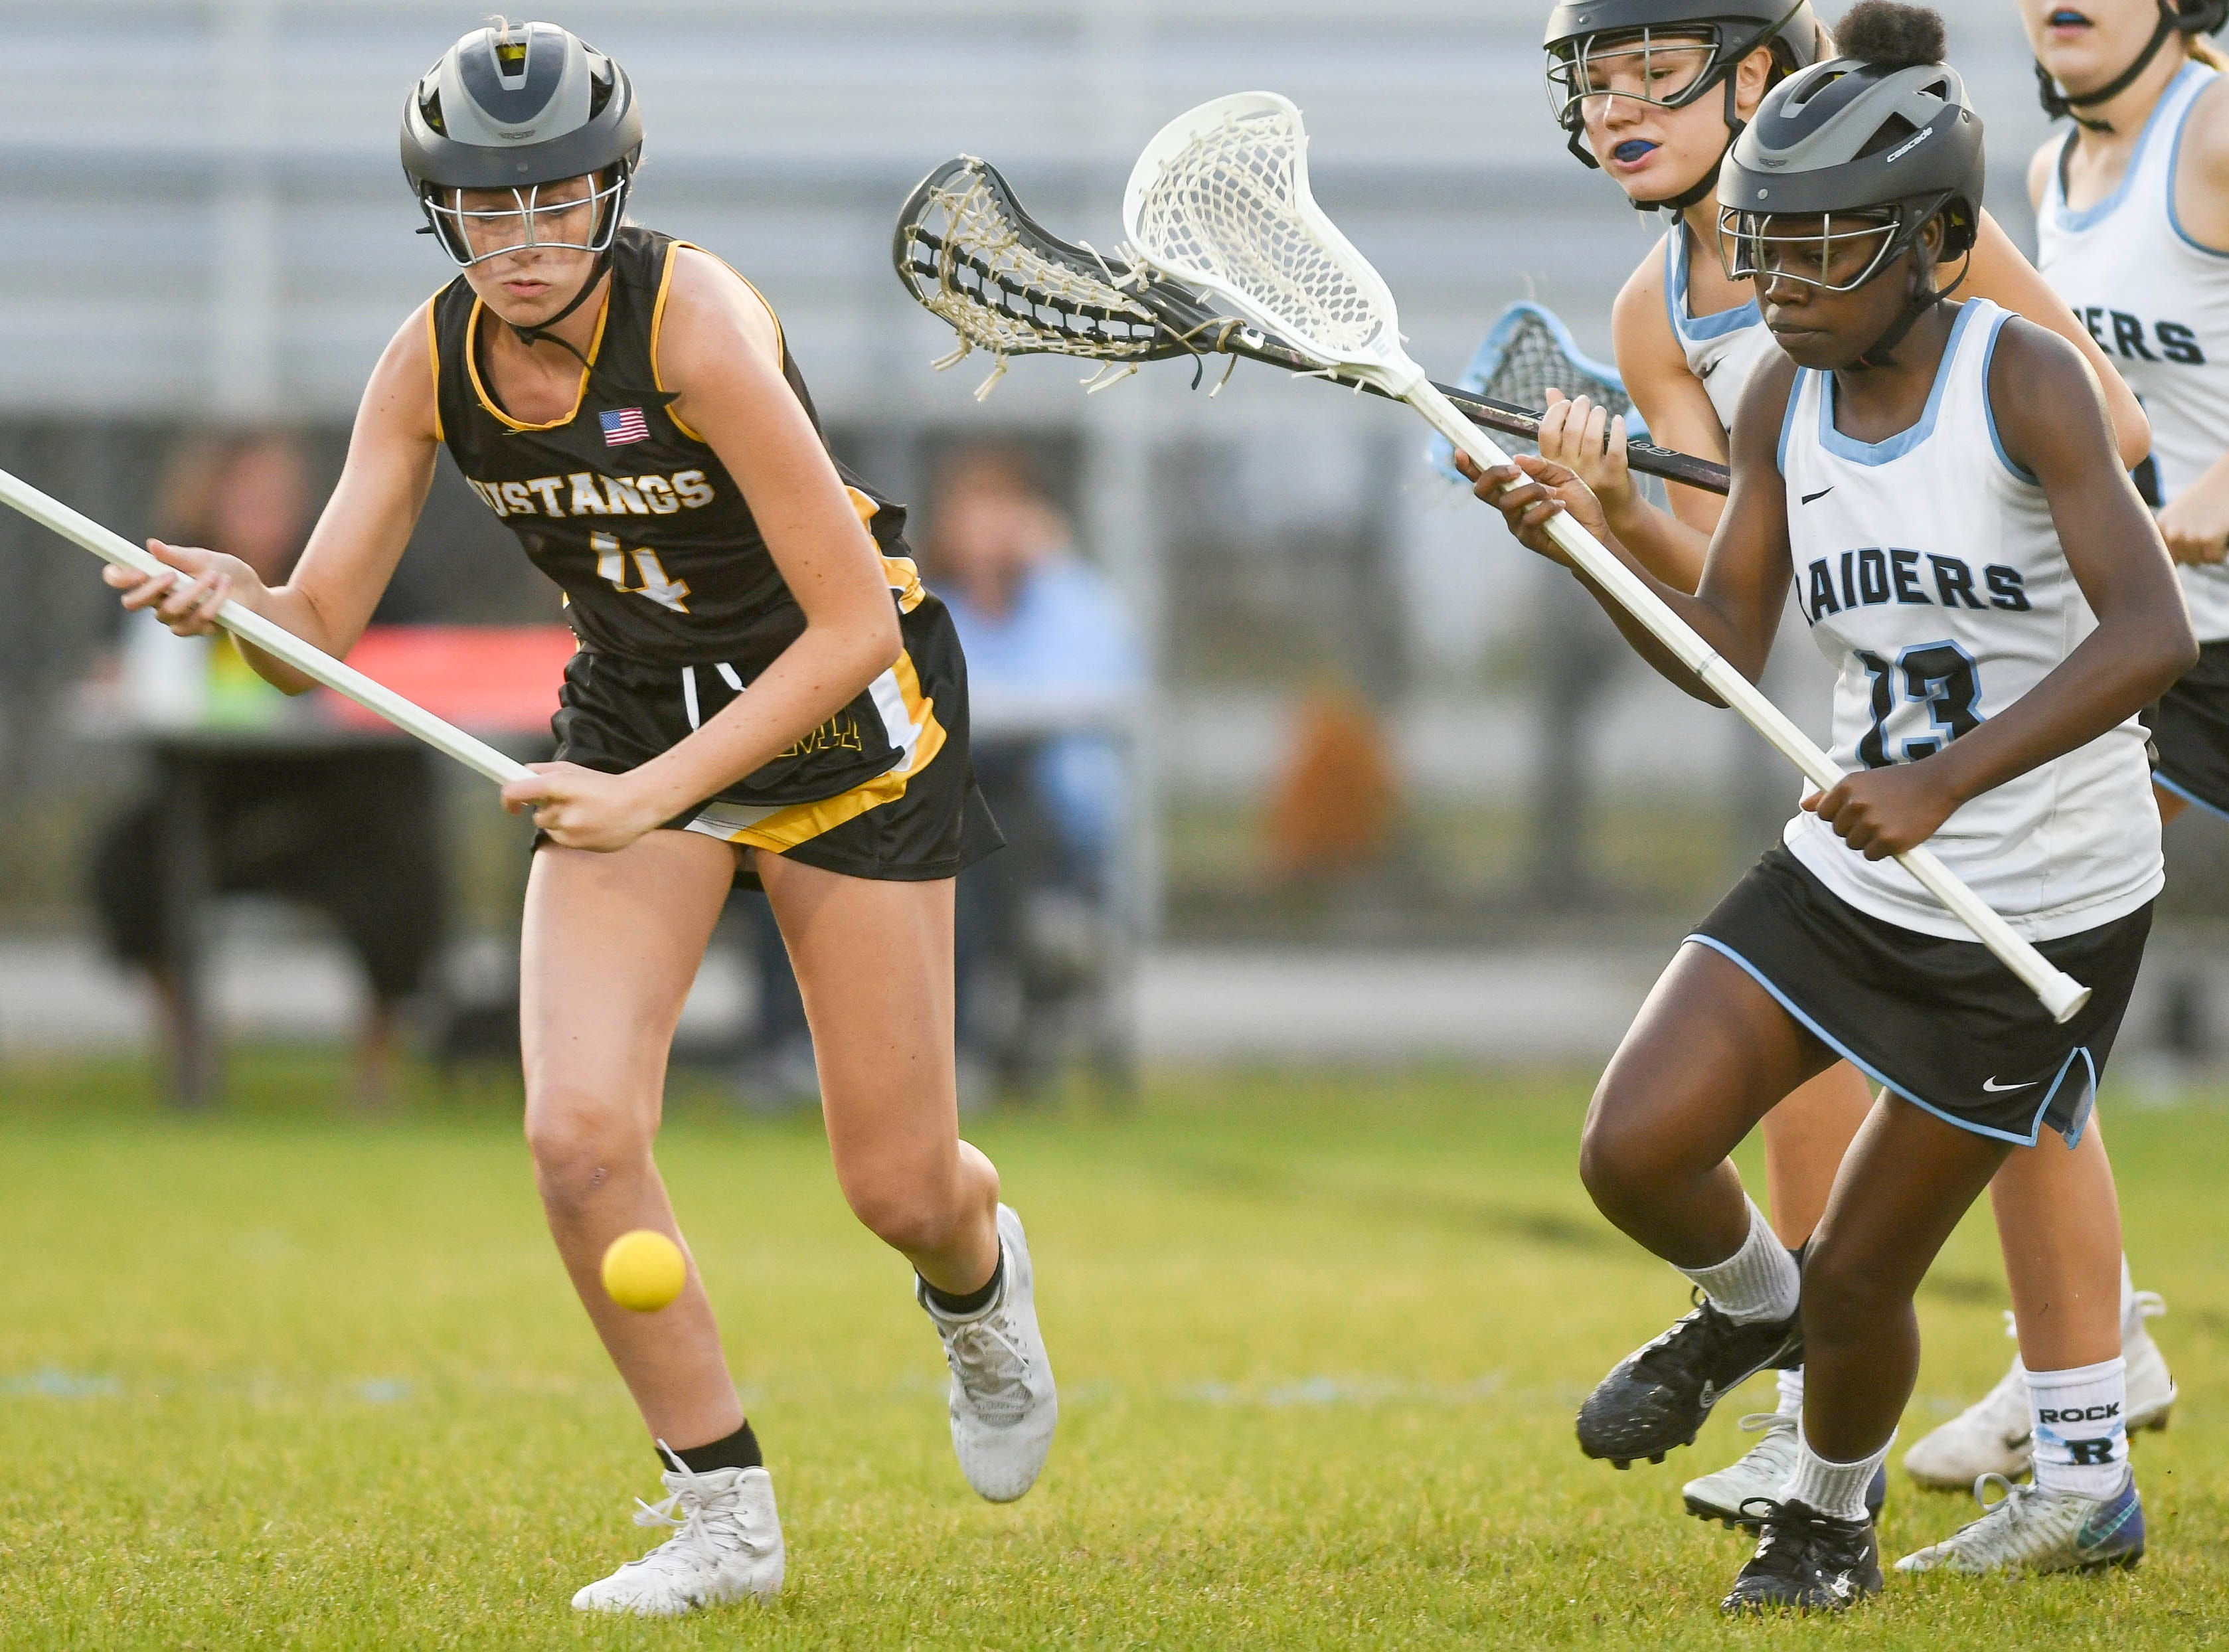 Merritt Island's Heather Johnston and Raven Kearse of Rockledge chase a loose ball during Tuesday's game.